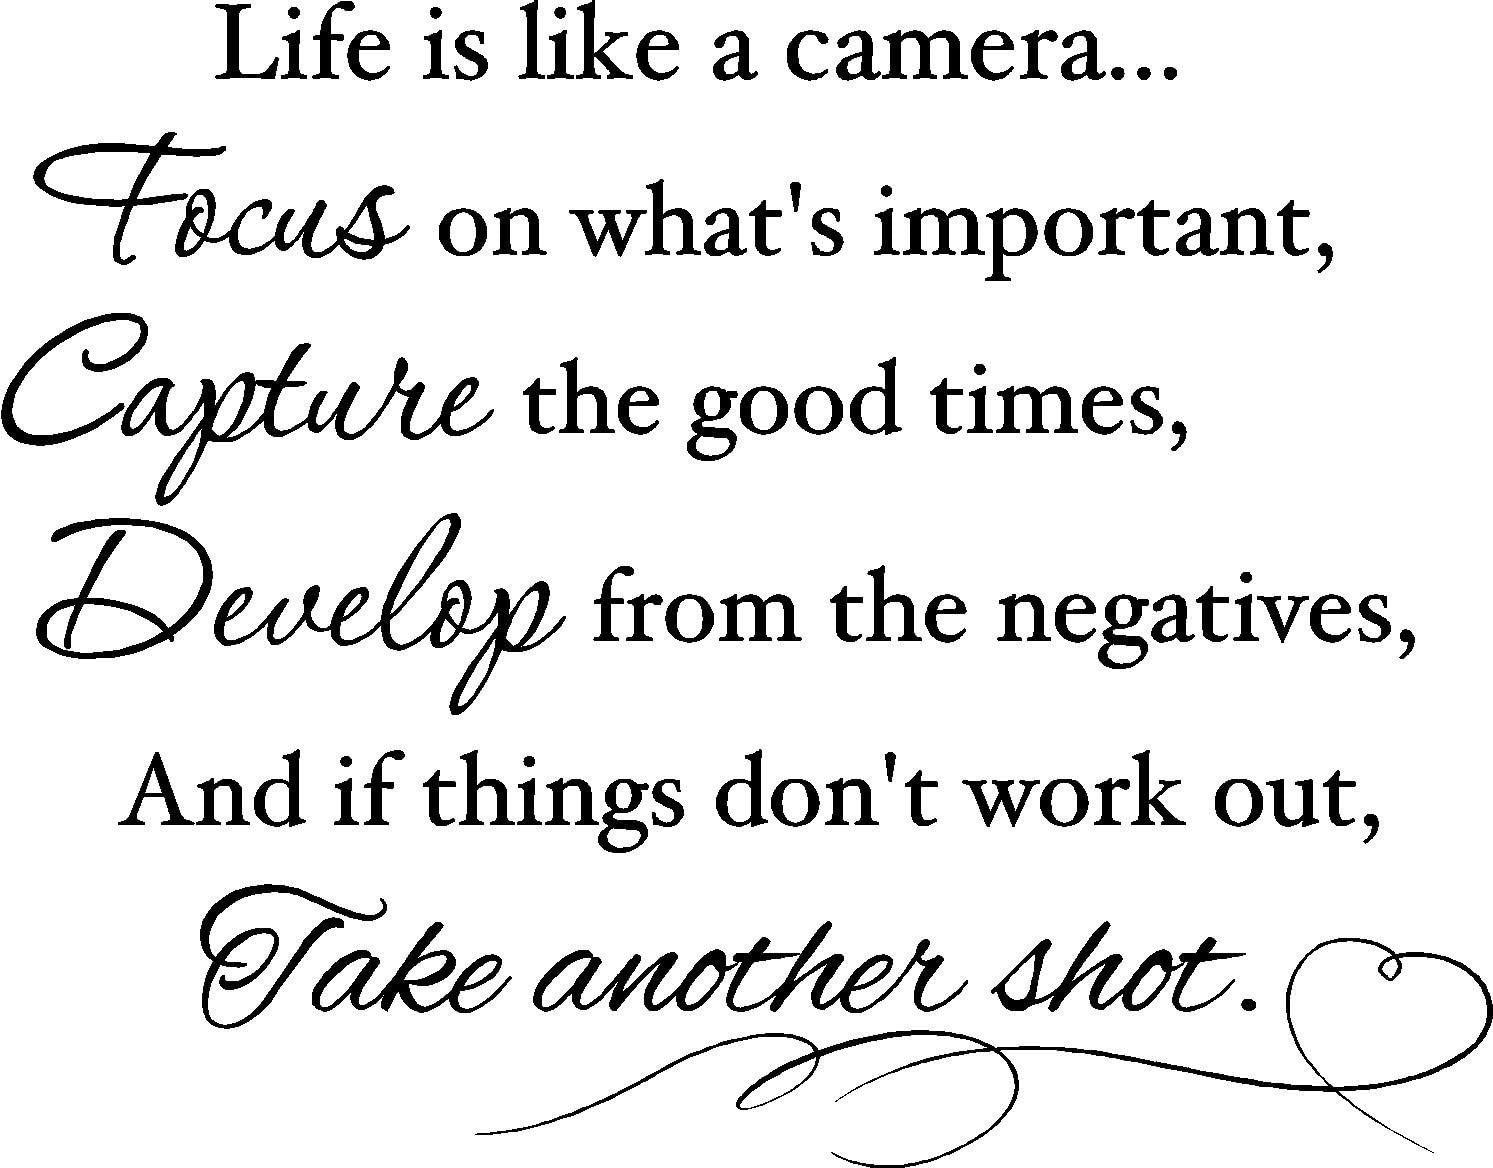 Life is Like a Camera Focus on What's Important, Capture The Good Times, Develop from The Negatives, and if Things Don't Work Out, take Another Shot Wall Sayings Vinyl Decal Art